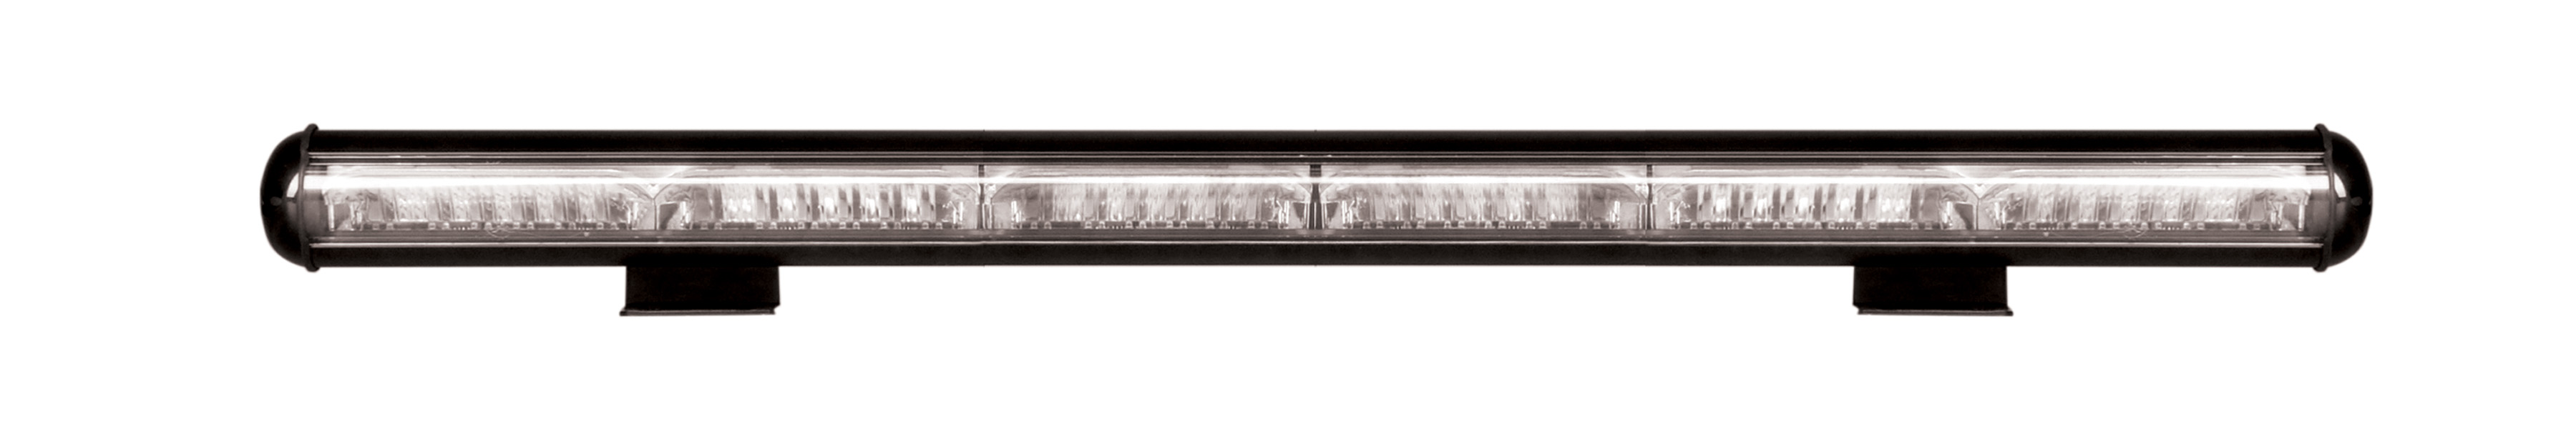 nFORCE® Interior LED Traffic Controller Product Image